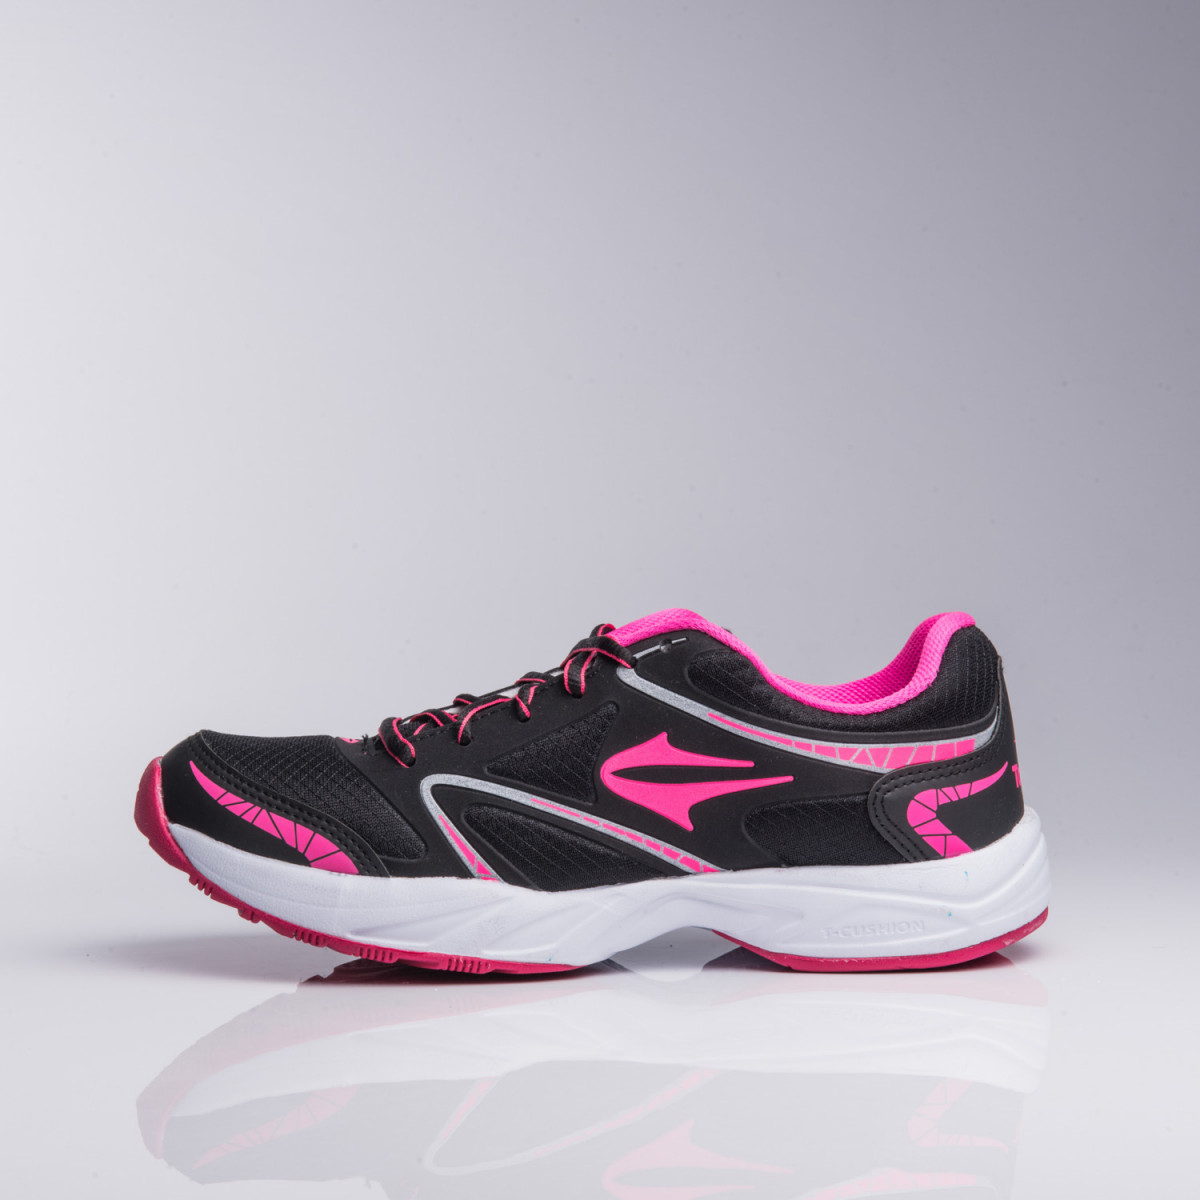 Zapatillas Topper Lady Dempsy II